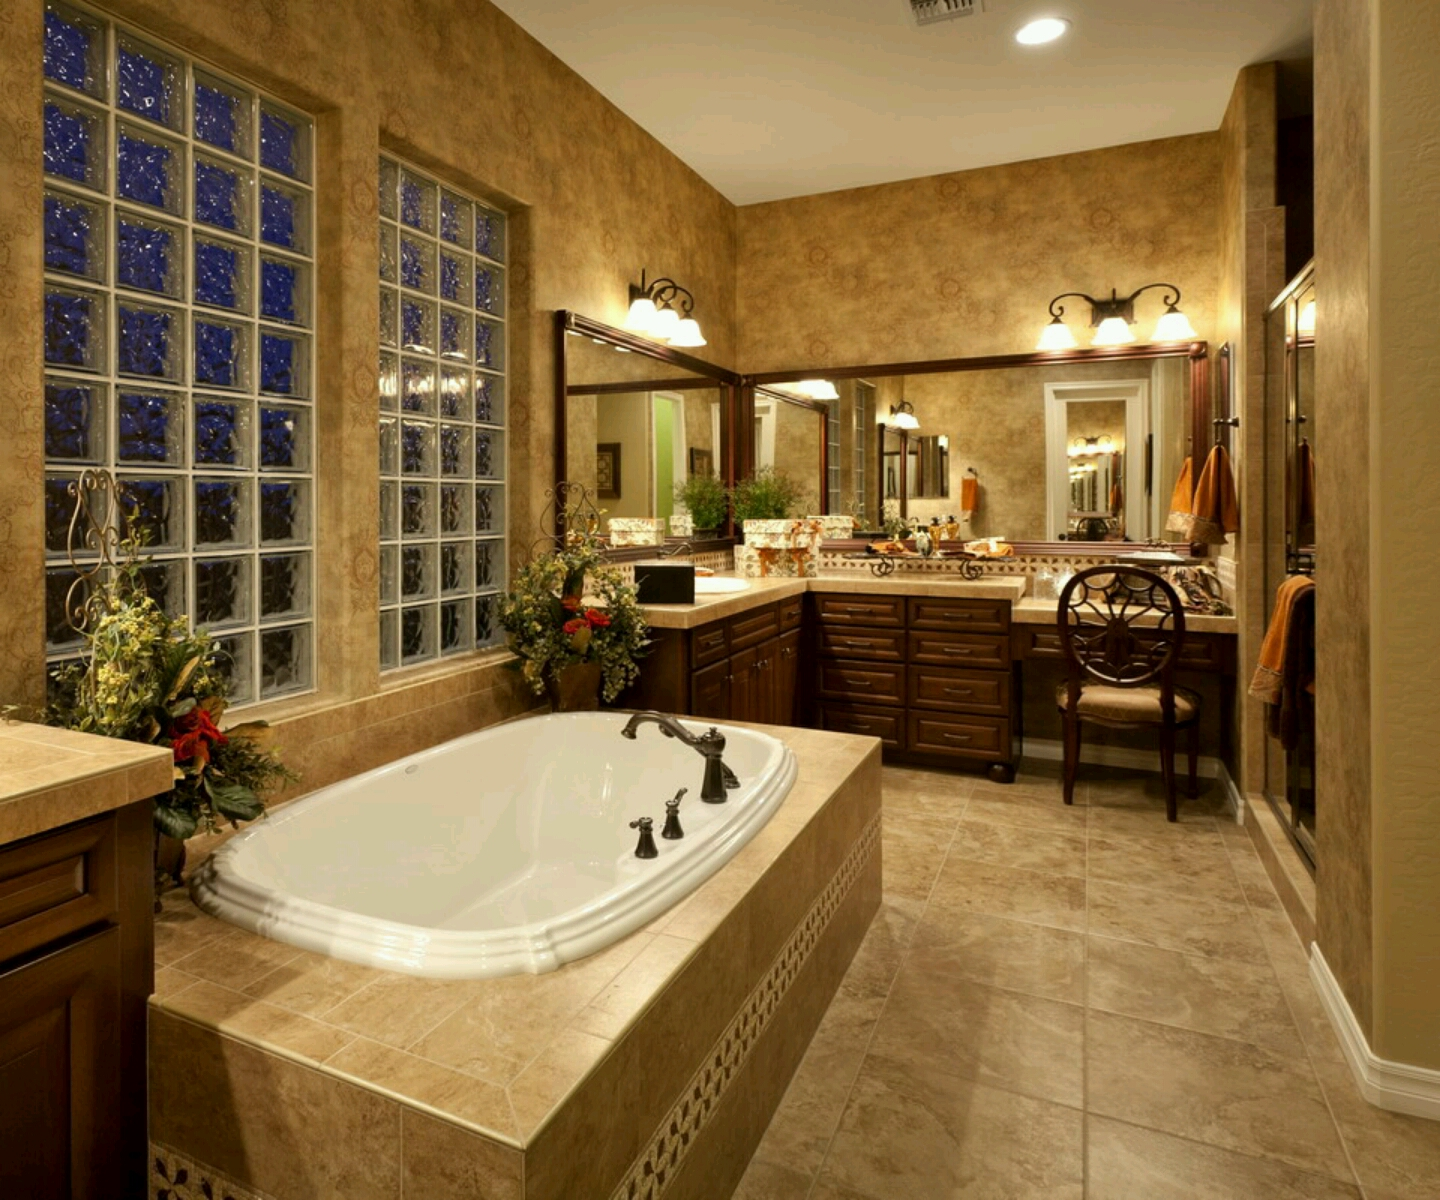 Luxury modern bathrooms designs ideas furniture gallery - Luxury bathroom ...